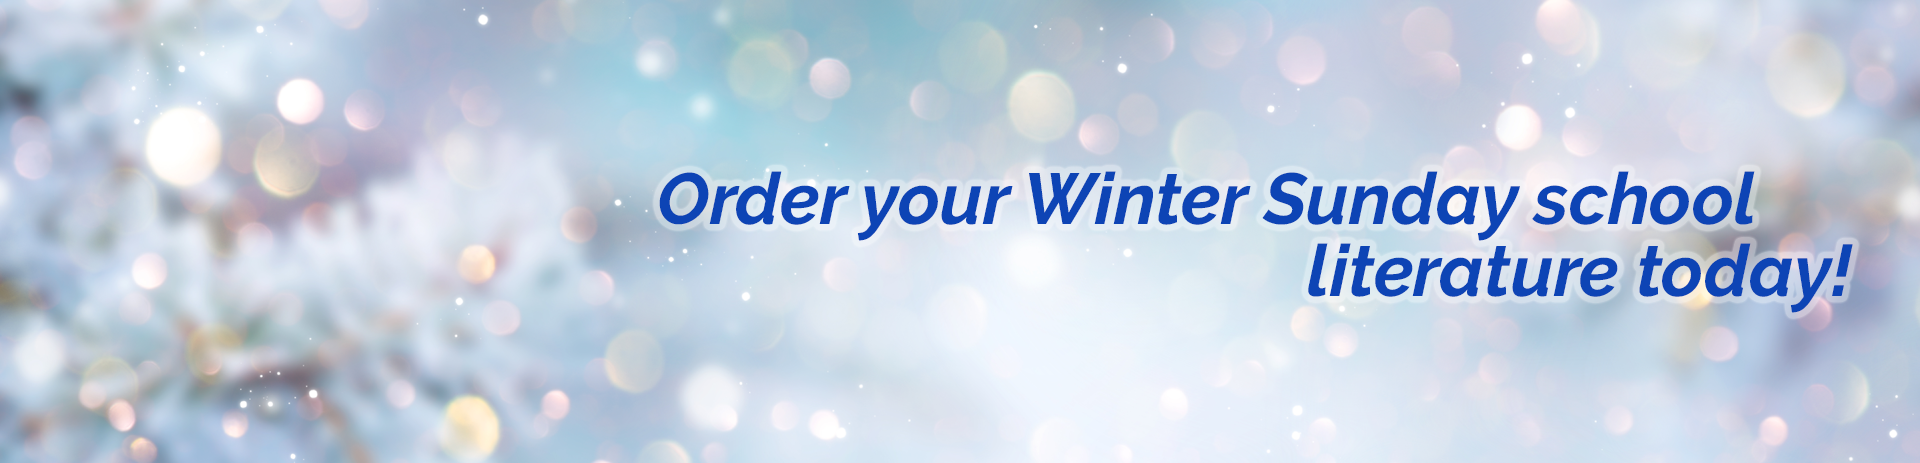 Order your winter Sunday school literature today!